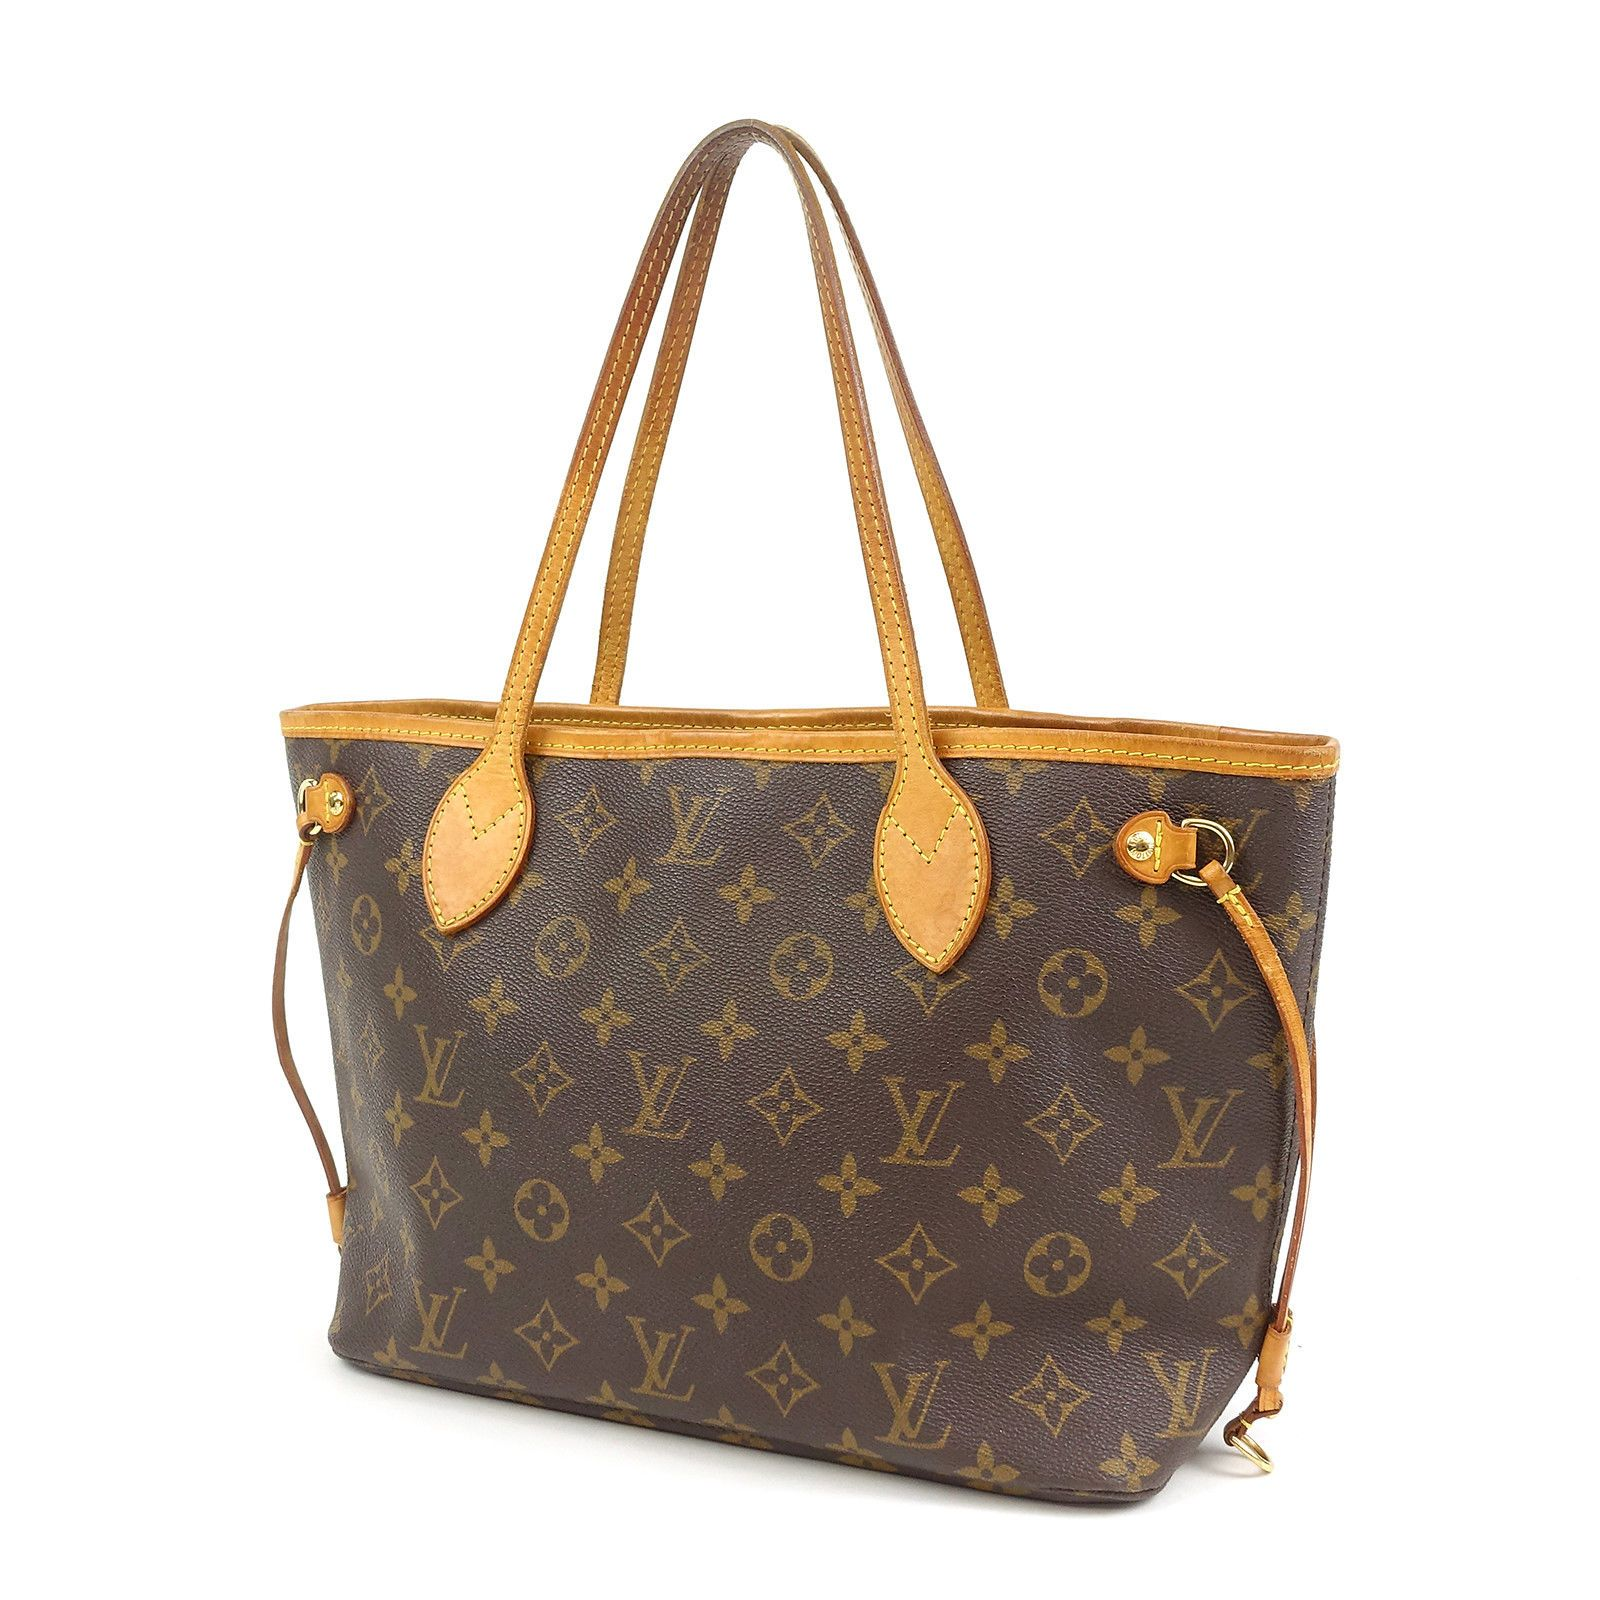 eb1807fe685e Authentic Louis Vuitton Monogram Neverfull PM Tote Bag M40155 Used F ...